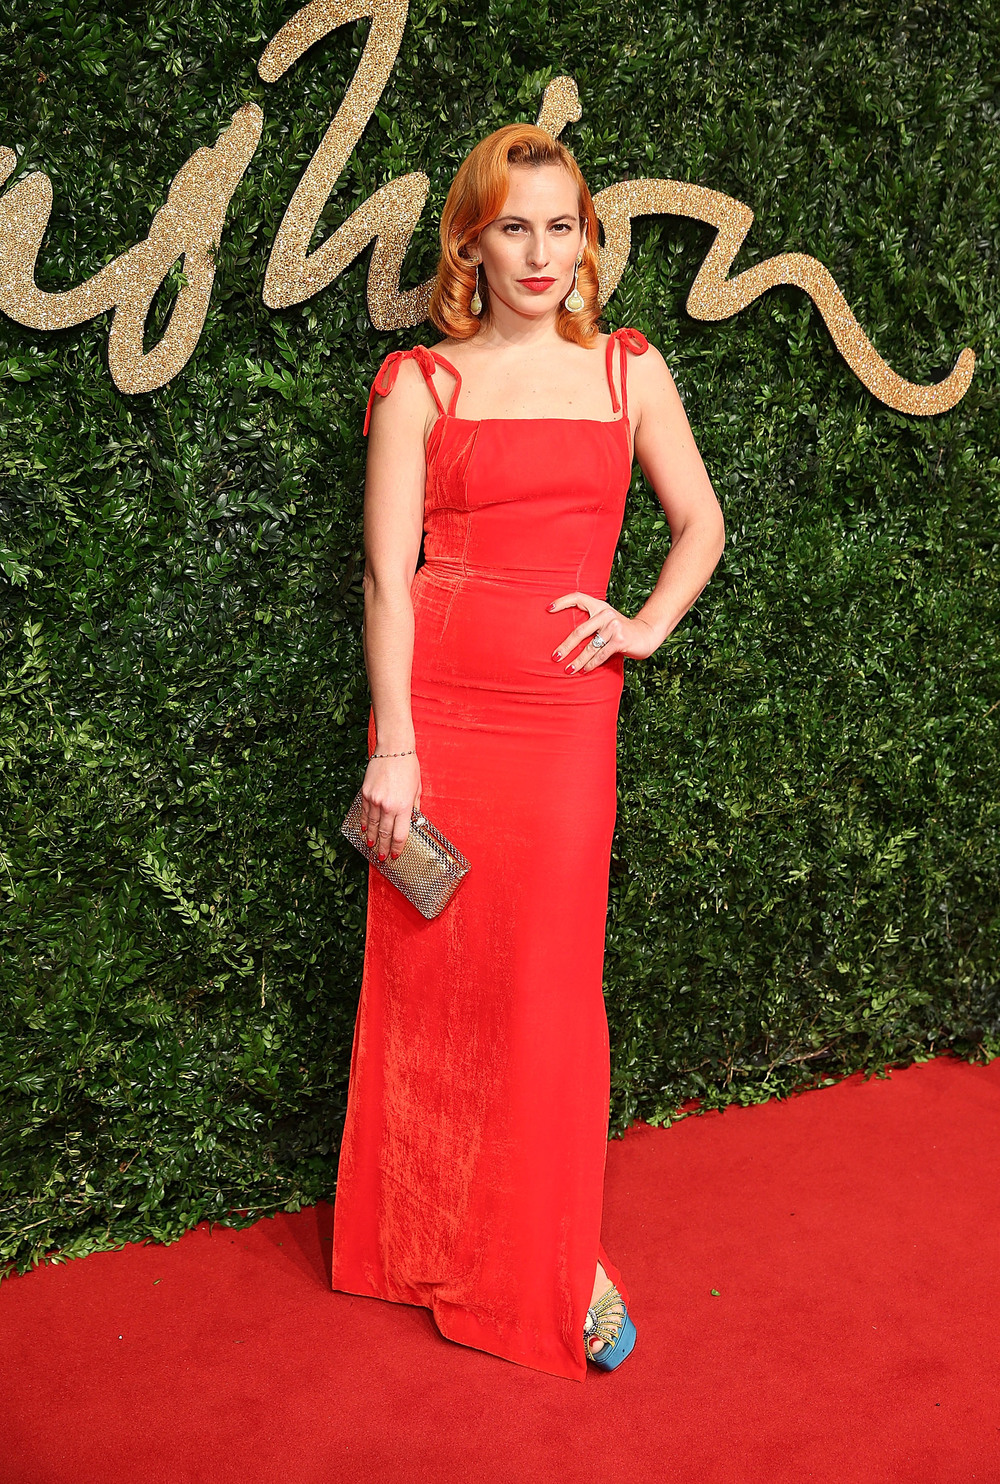 Charlotte Olympia Dellal attends the British Fashion Awards 2015 in partnership with Swarovski credit Mike Marsland British Fashion Council.JPG